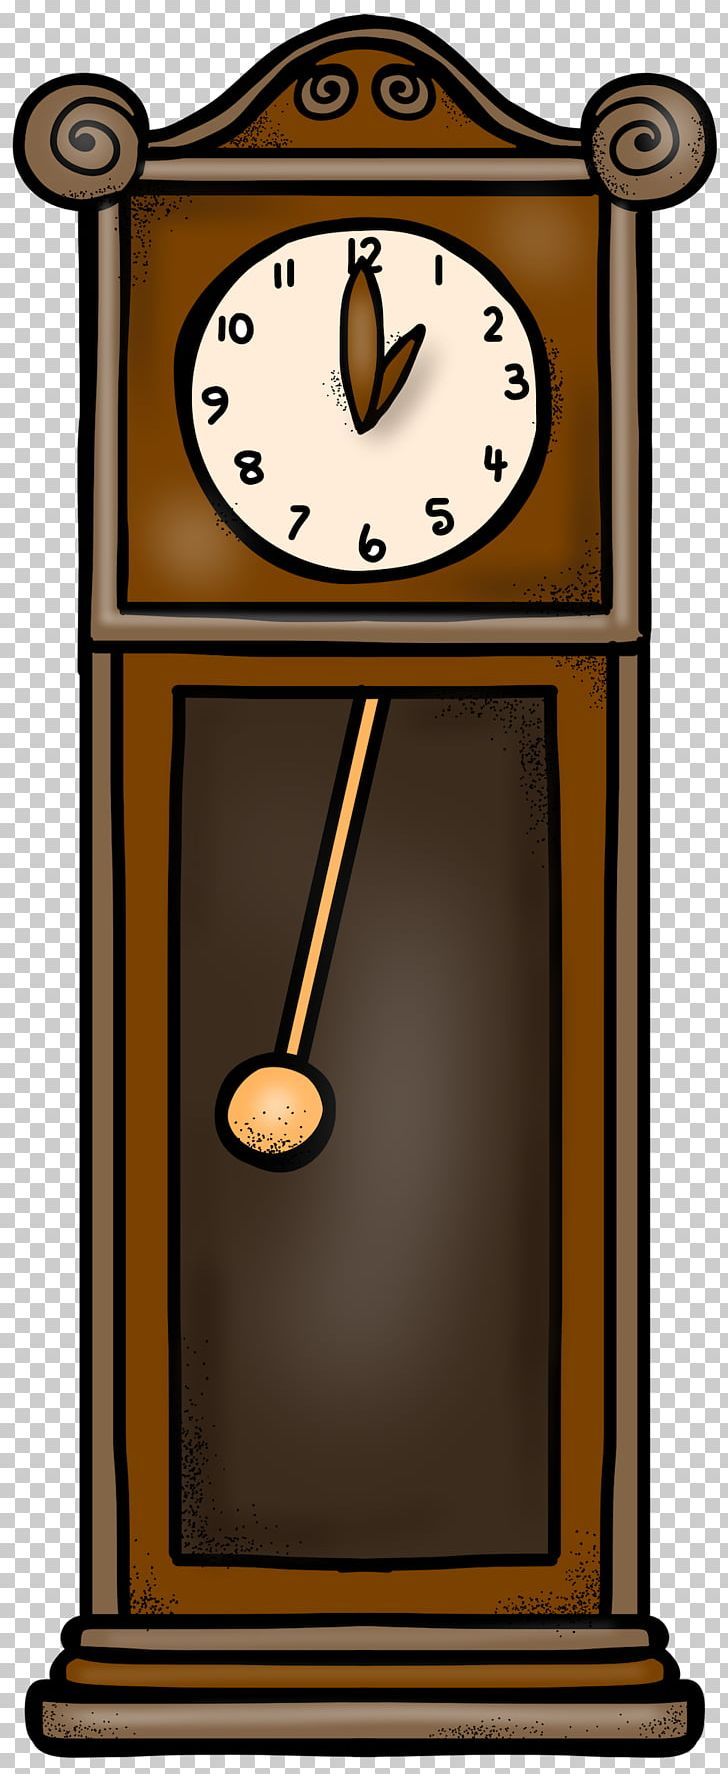 Hickory clipart vector transparent download The Clock Struck One: A Time-Telling Tale Hickory Dickory Dock PNG ... vector transparent download